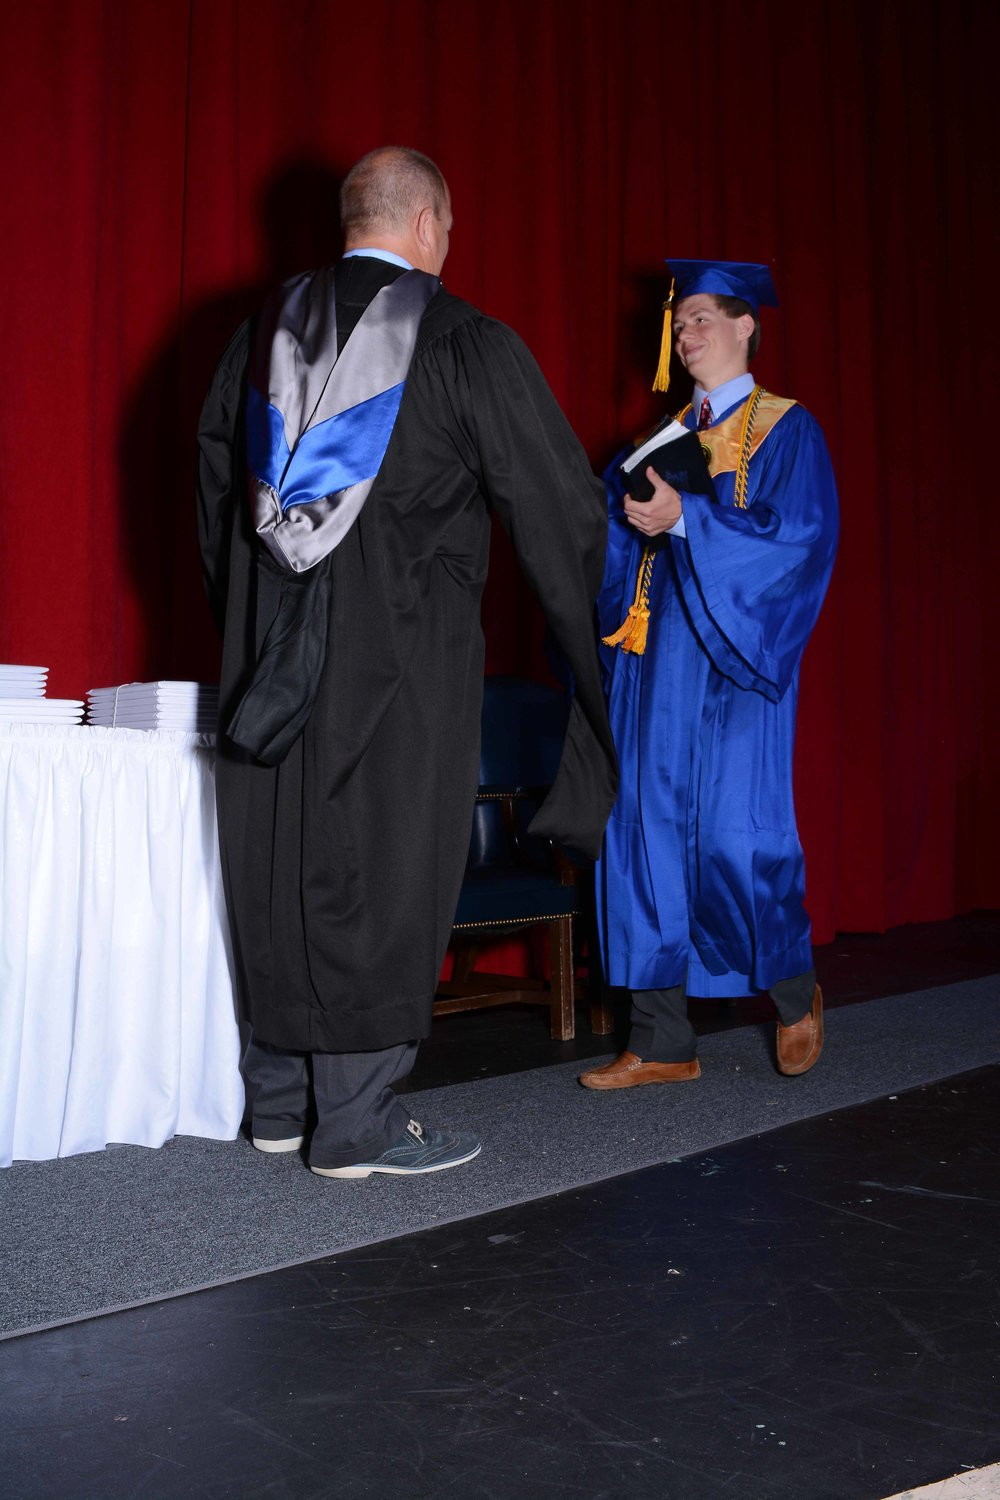 May14 Commencement136.jpg